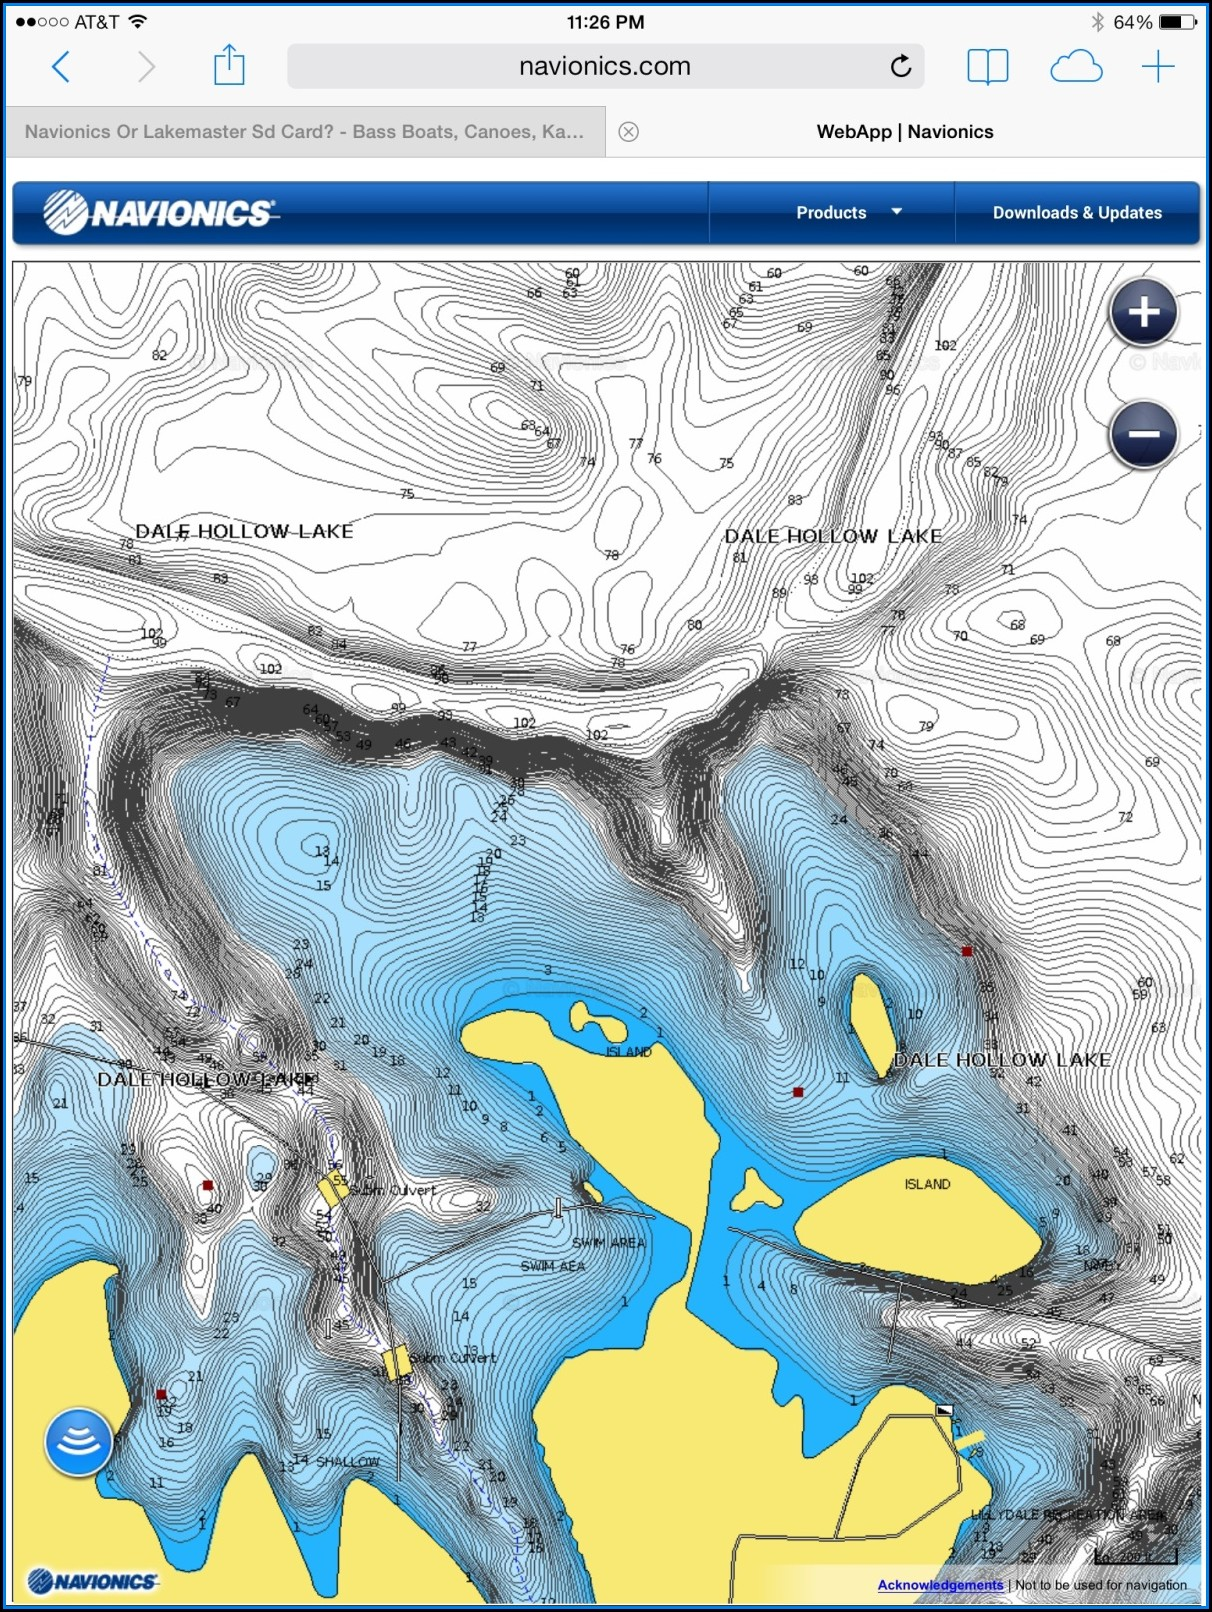 Lakemaster Maps Vs Navionics